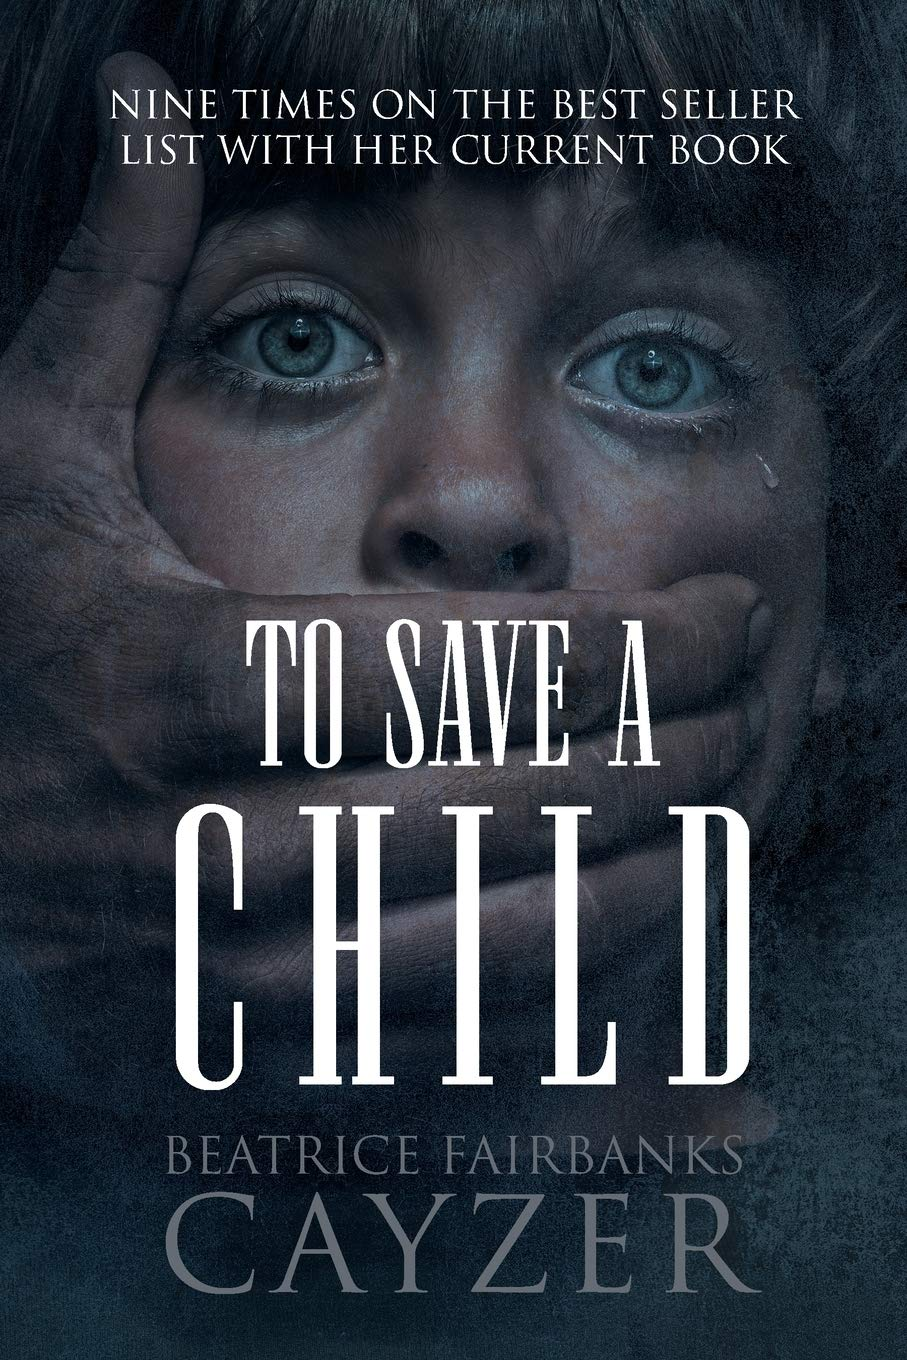 To Save A Child